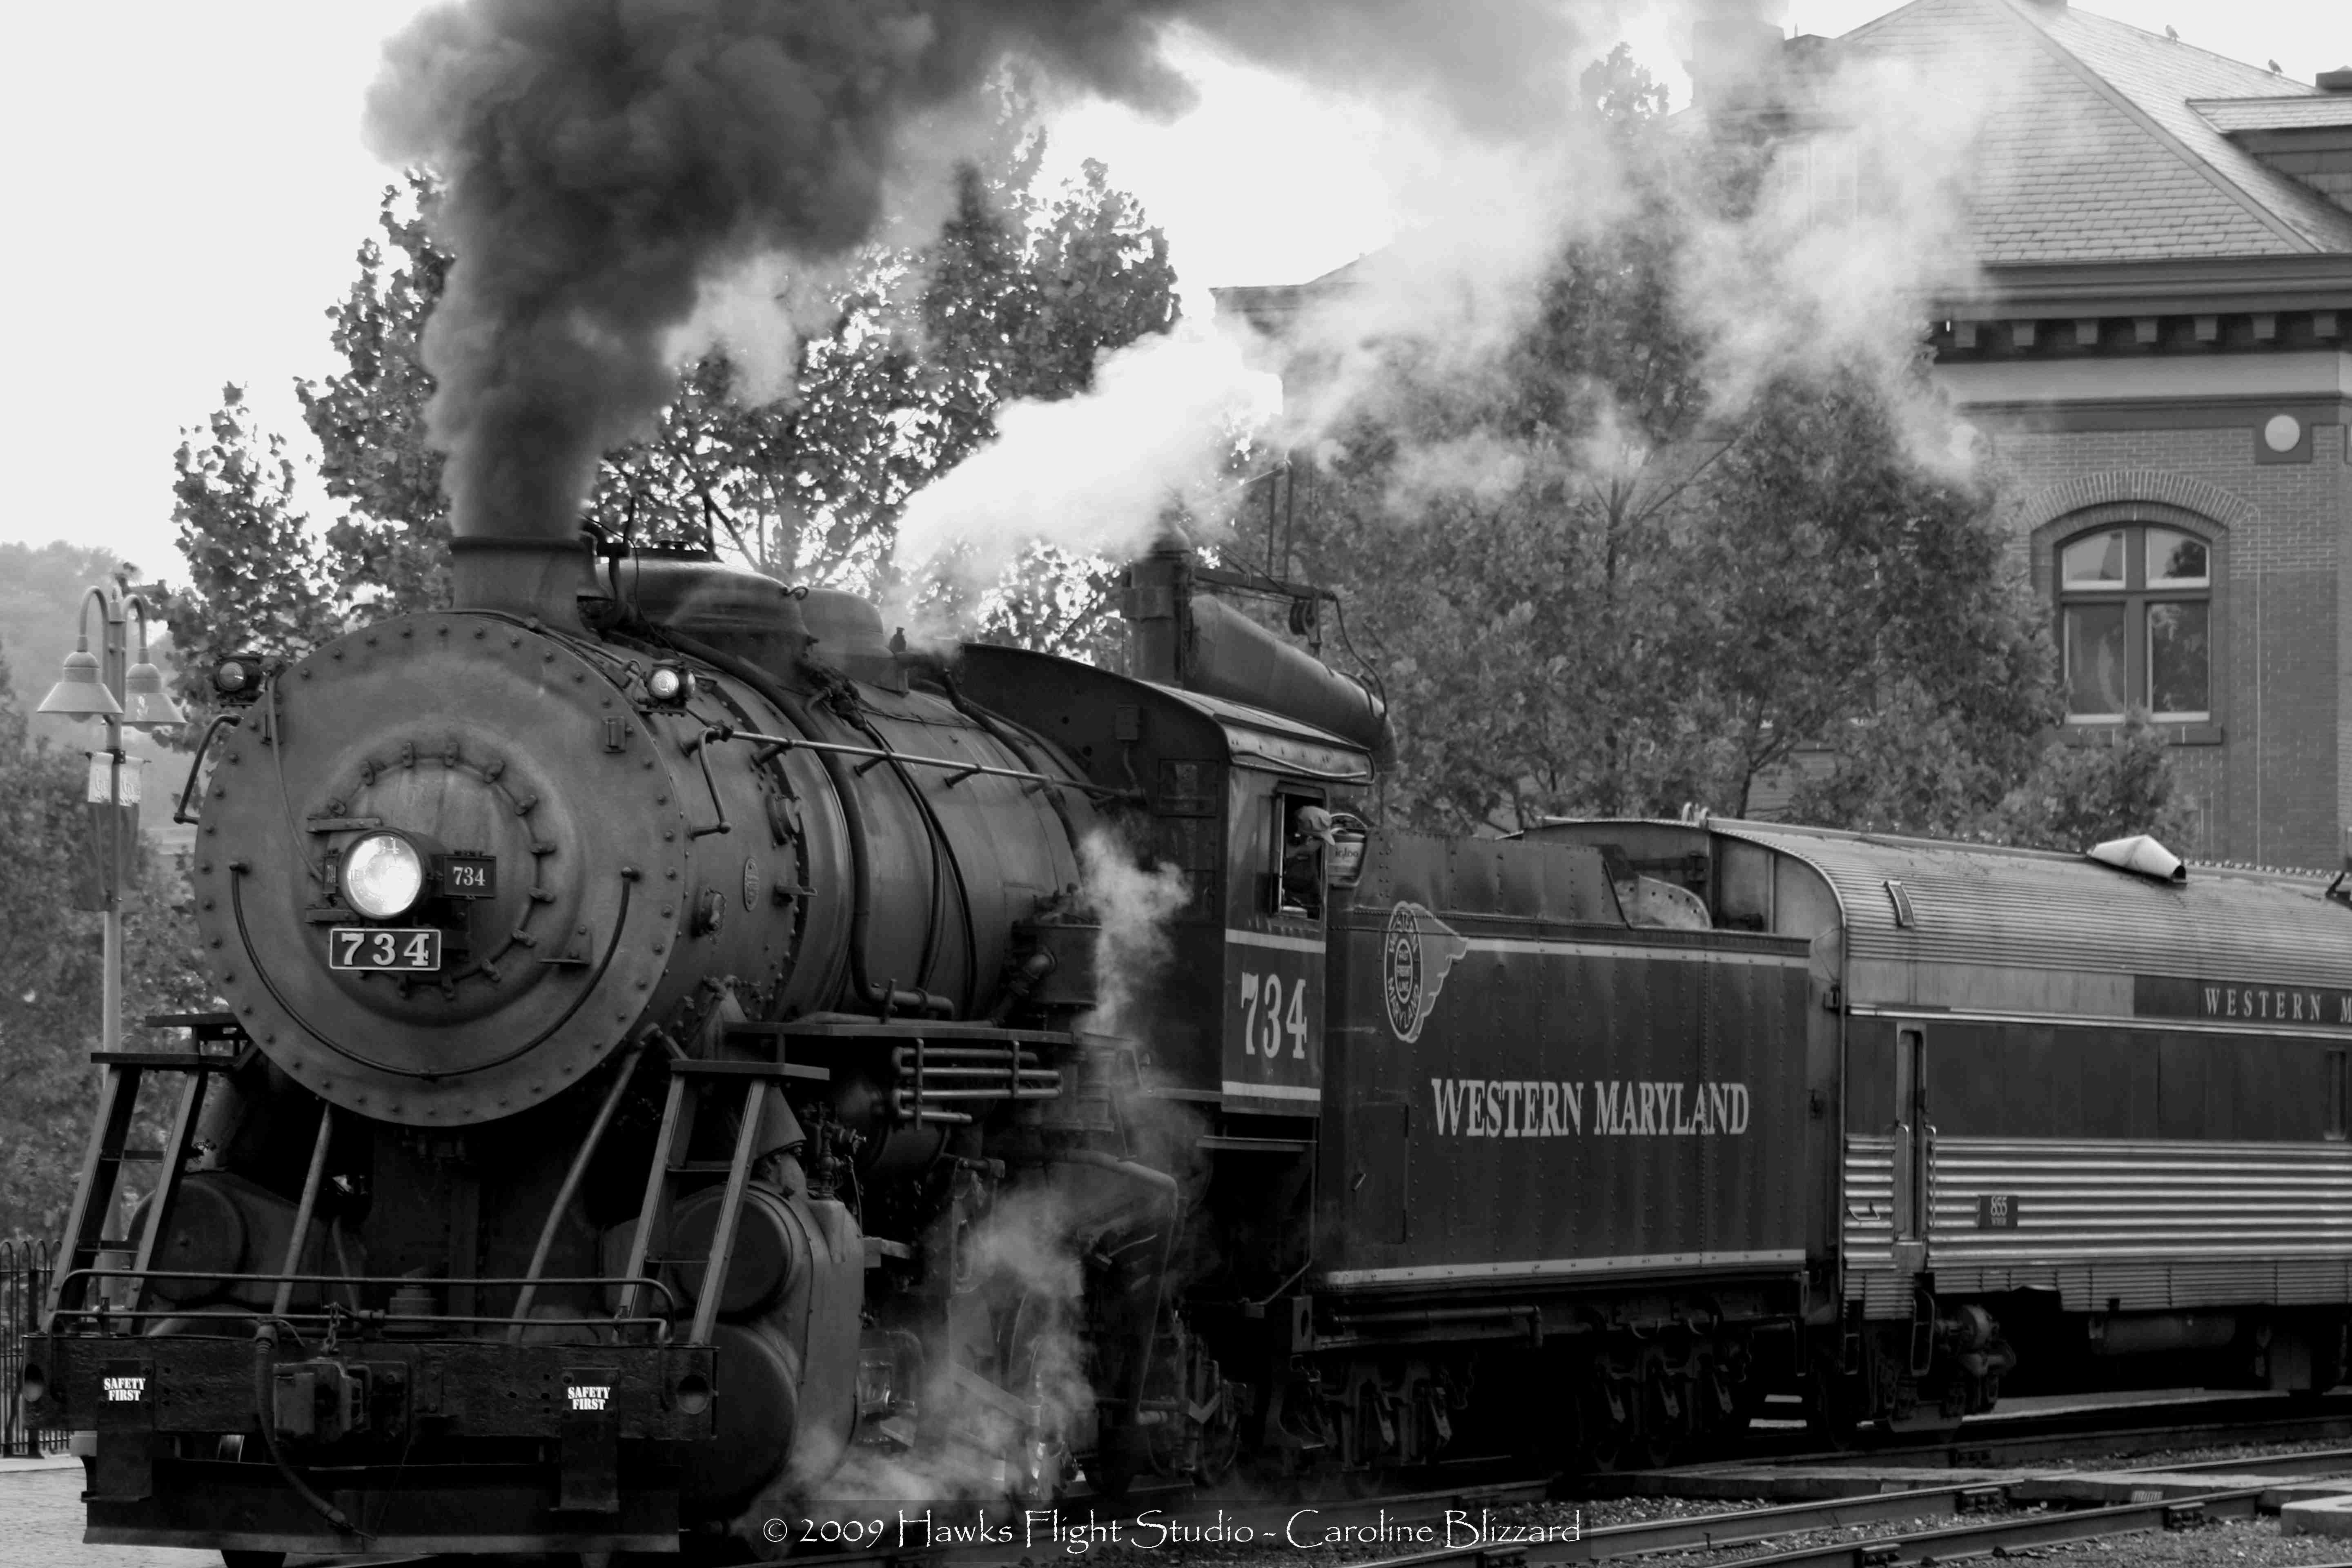 Pictures of trains